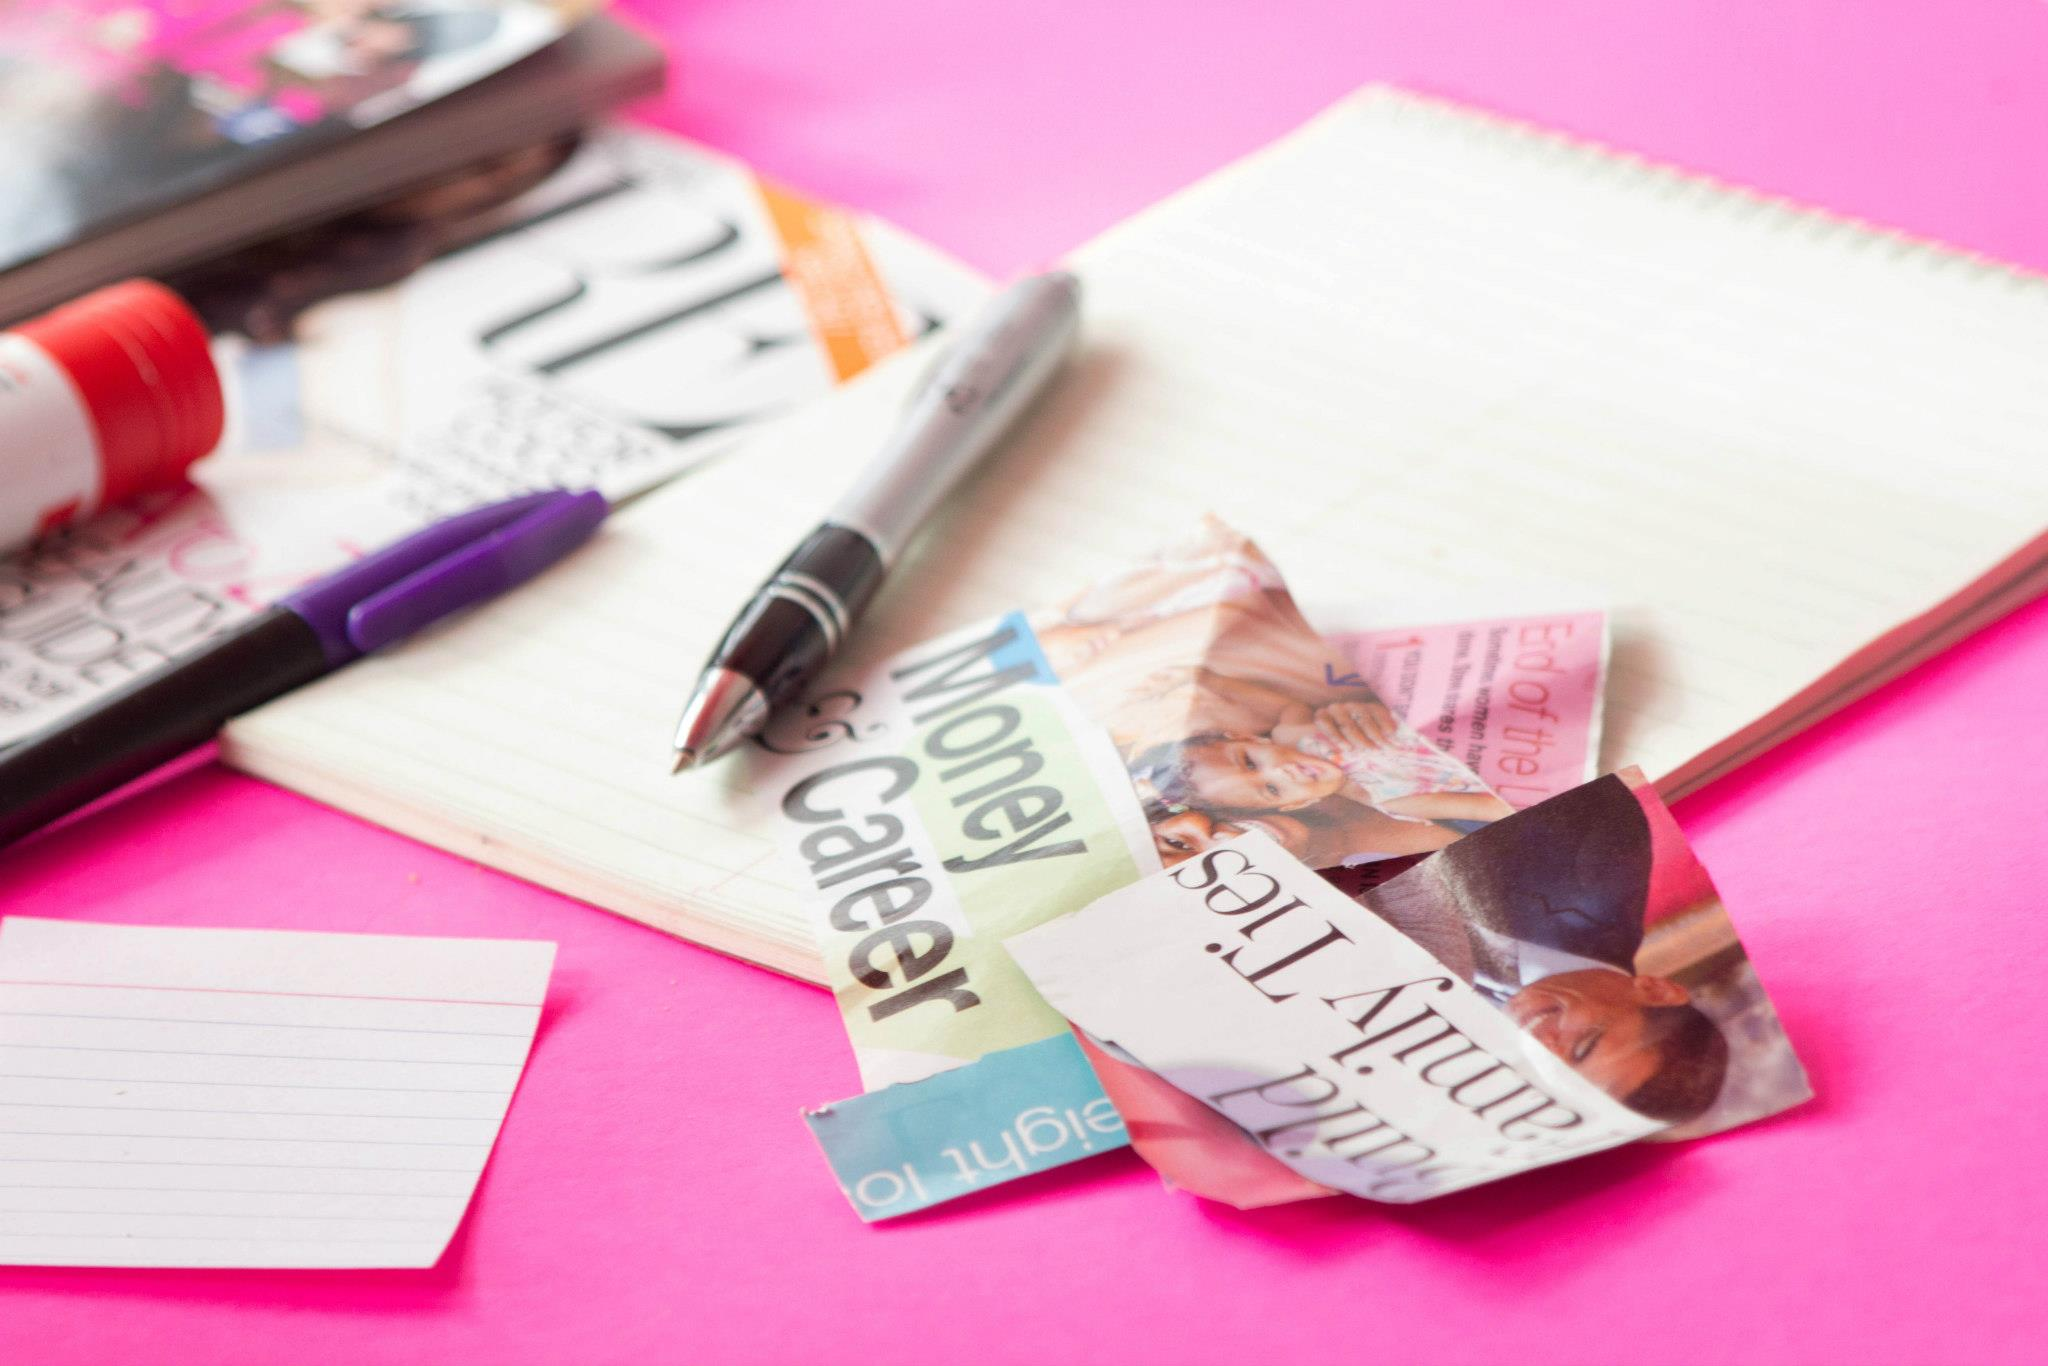 Dare to Dream: How I Manifest My Vision Board Thoughts into Real Life Things